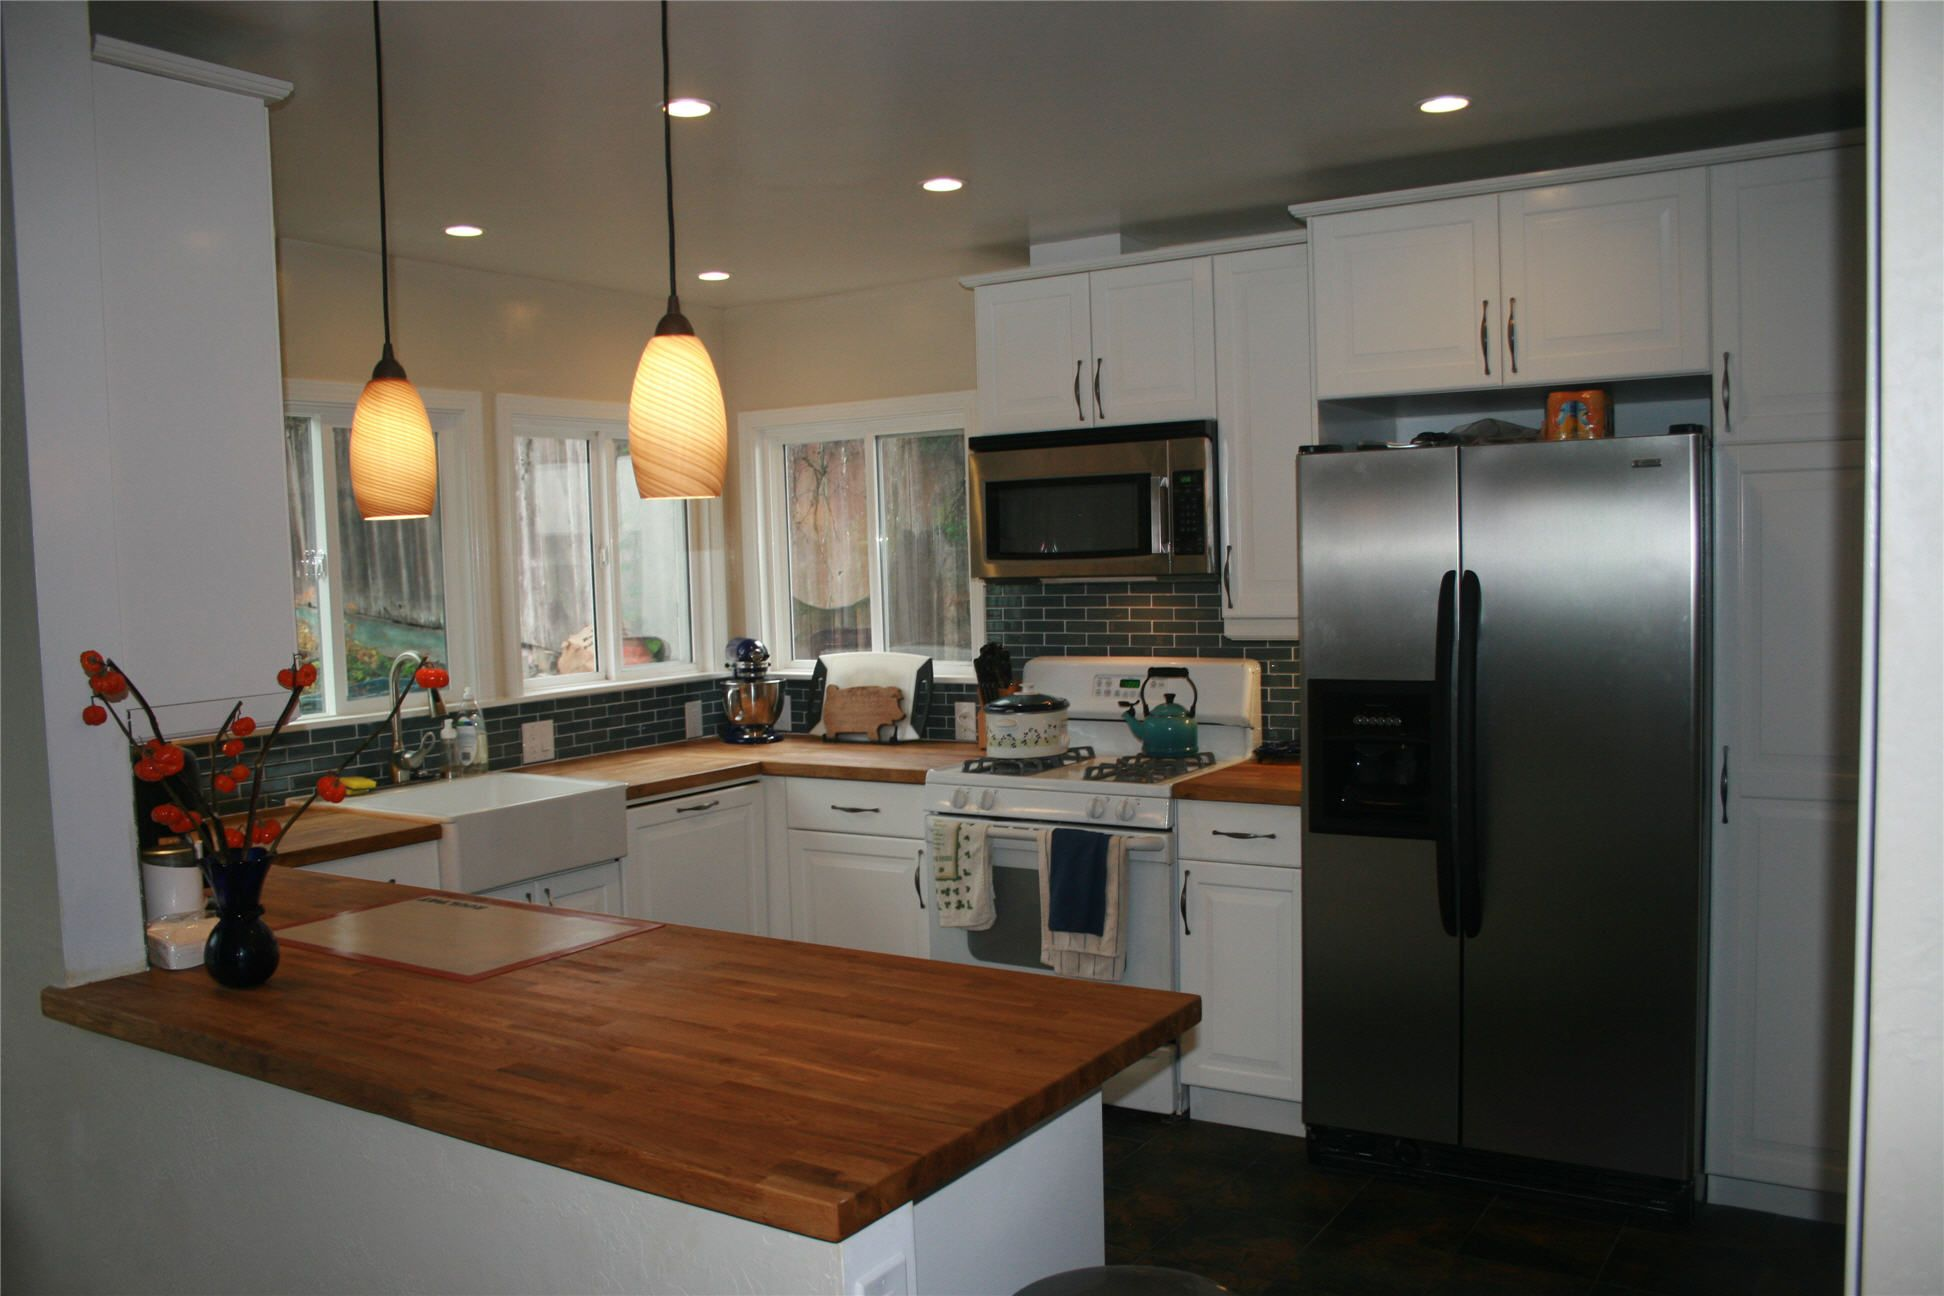 Butcher block kitchen countertops building plans now everythinga for